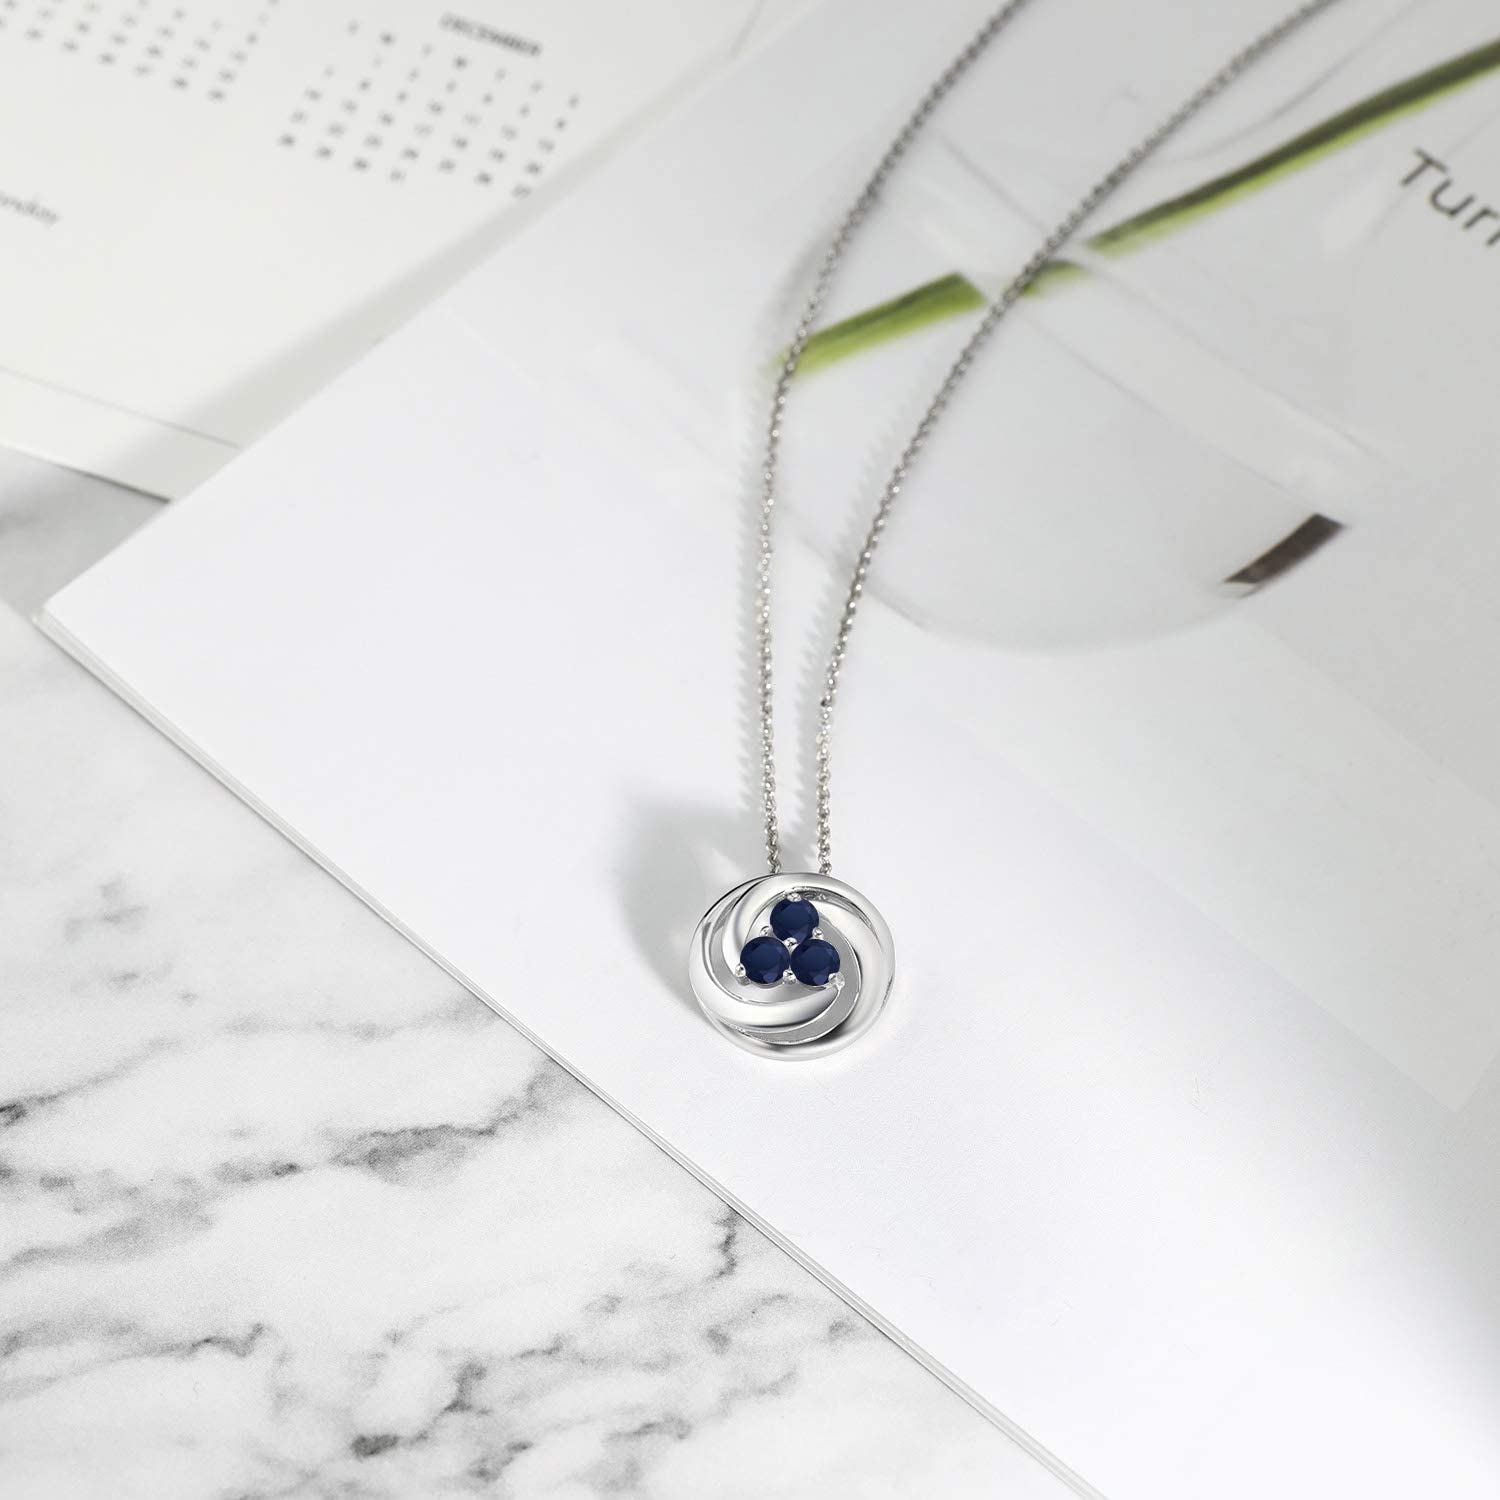 Gem Stone King 1.05 Ct Round Blue Sapphire 925 Sterling Silver Circle Round Pendant With Chain